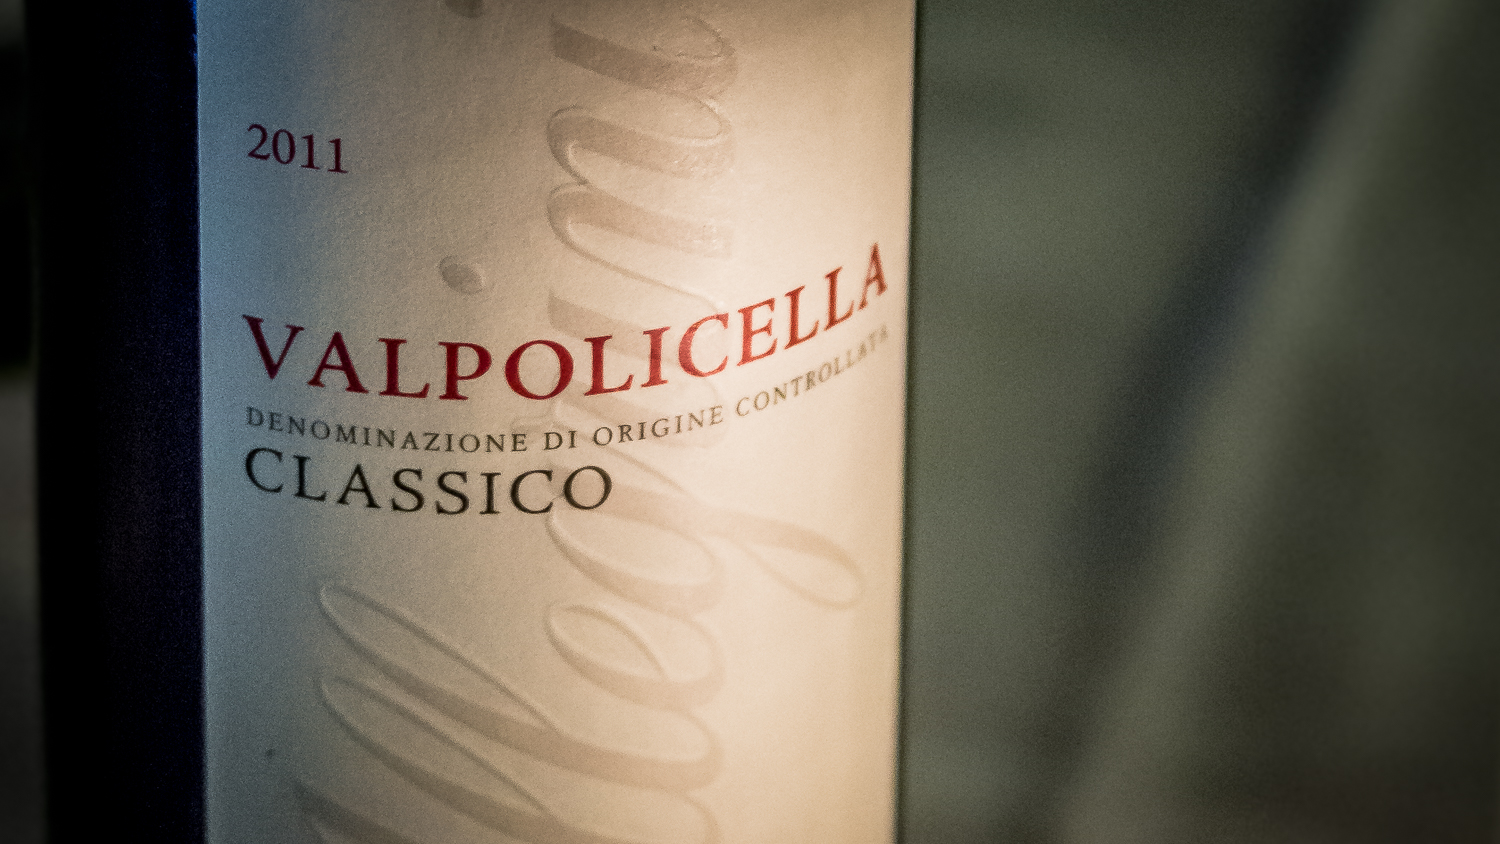 Valpolicella is from the Veneto, which is the same region in which Venice is located